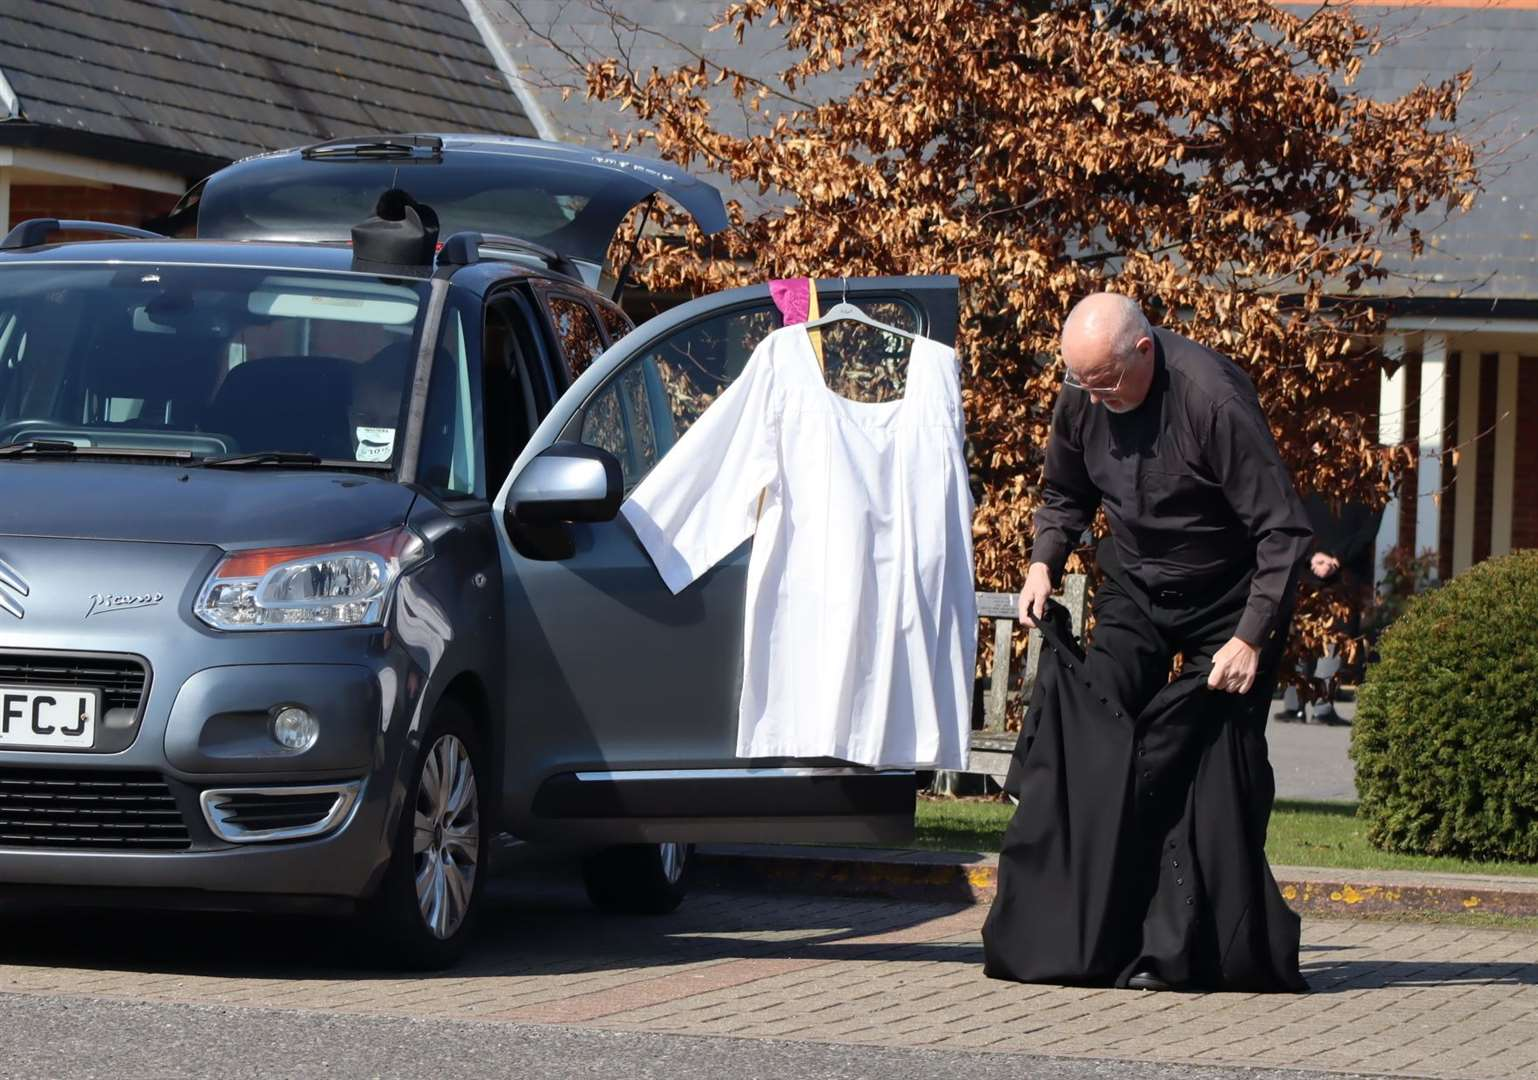 Priest had to change in car park because of new crematorium funeral rules